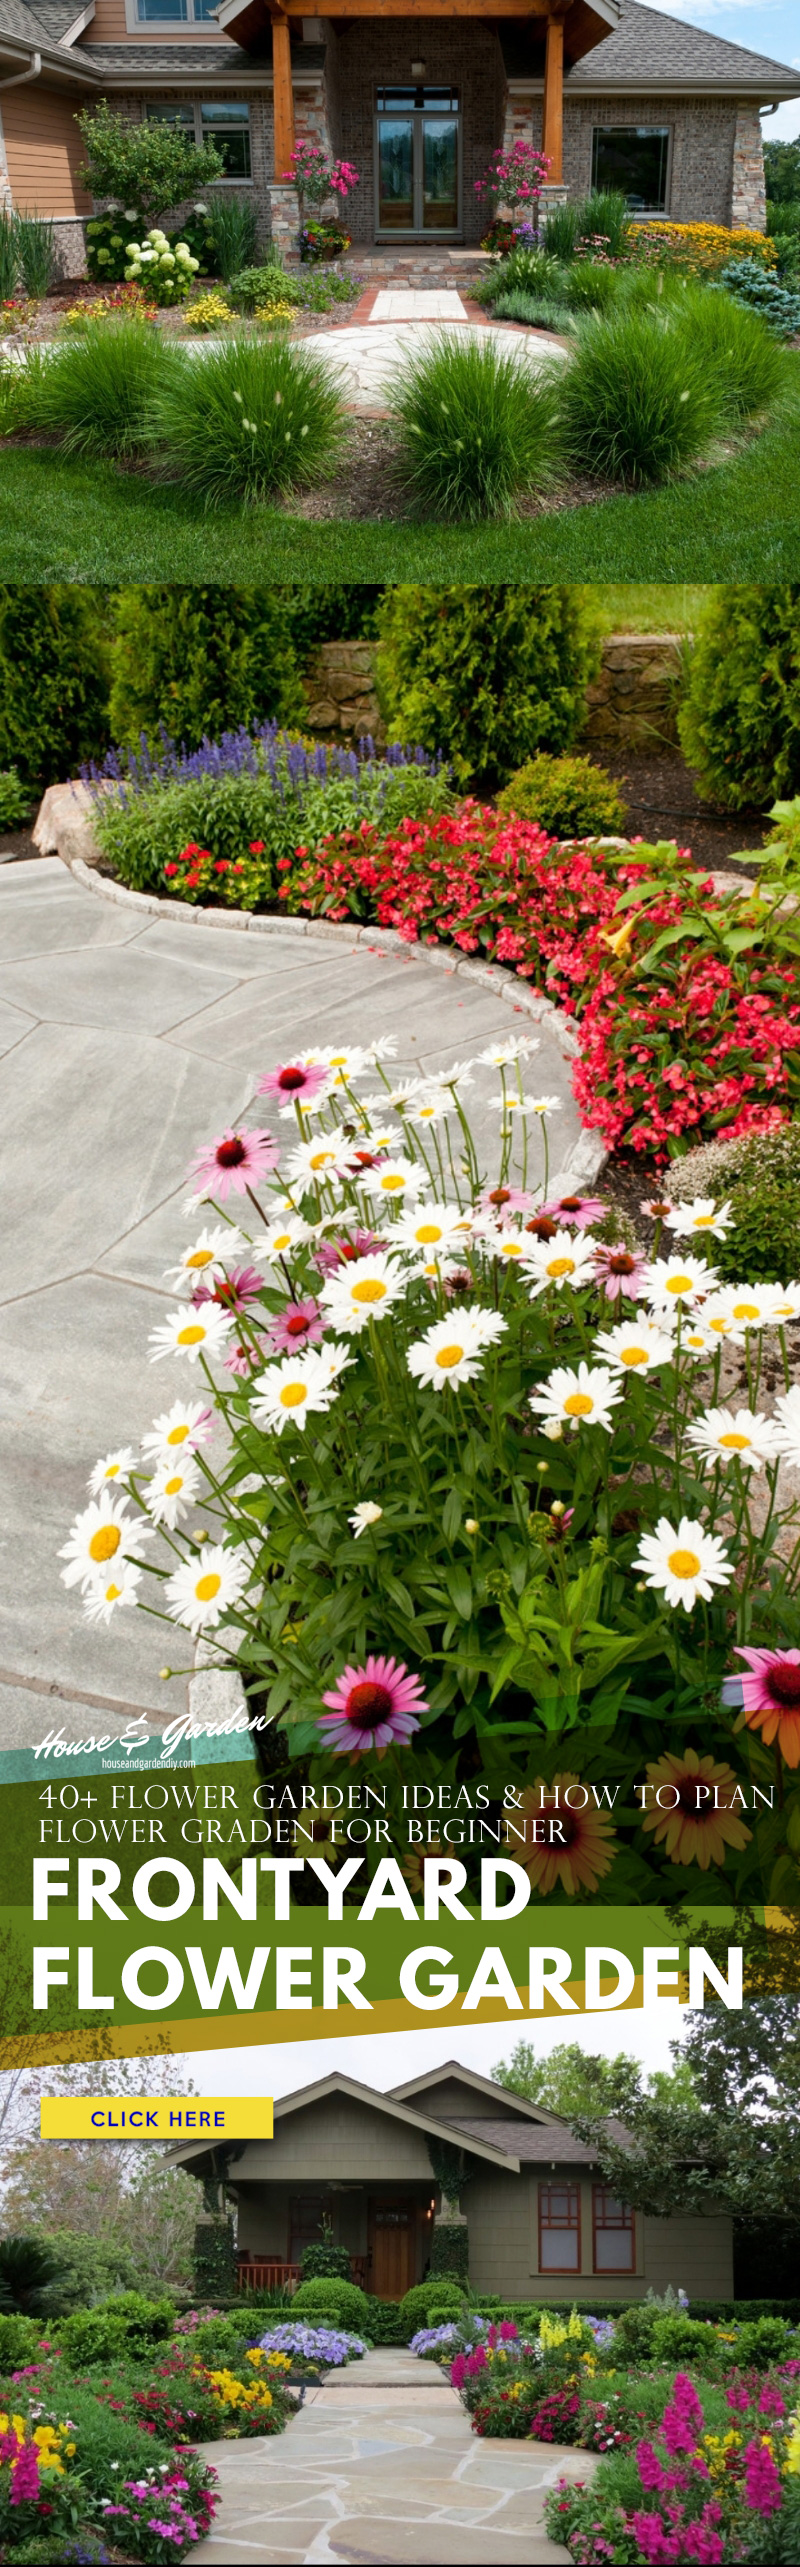 pictures of flower gardens